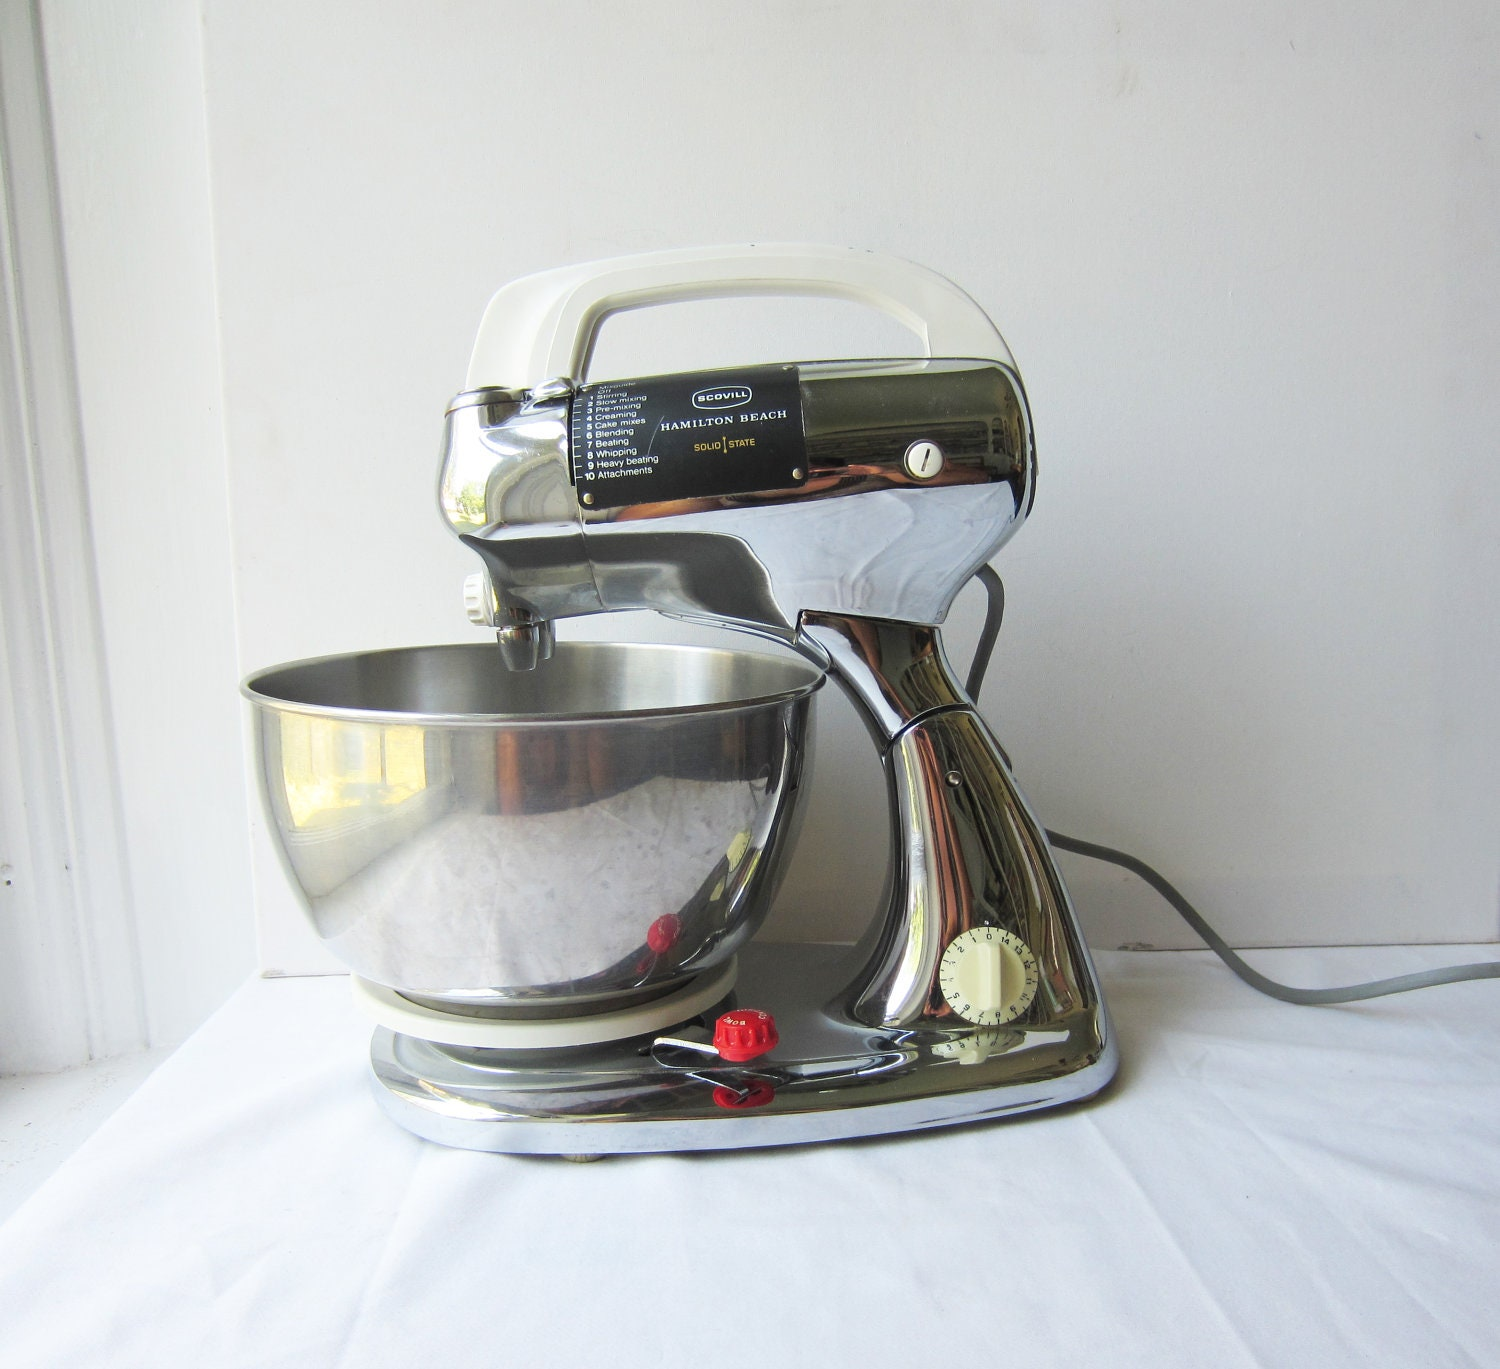 Small Exhibition Stand Mixer : Vintage chrome hamilton beach scovill solid state stand mixer